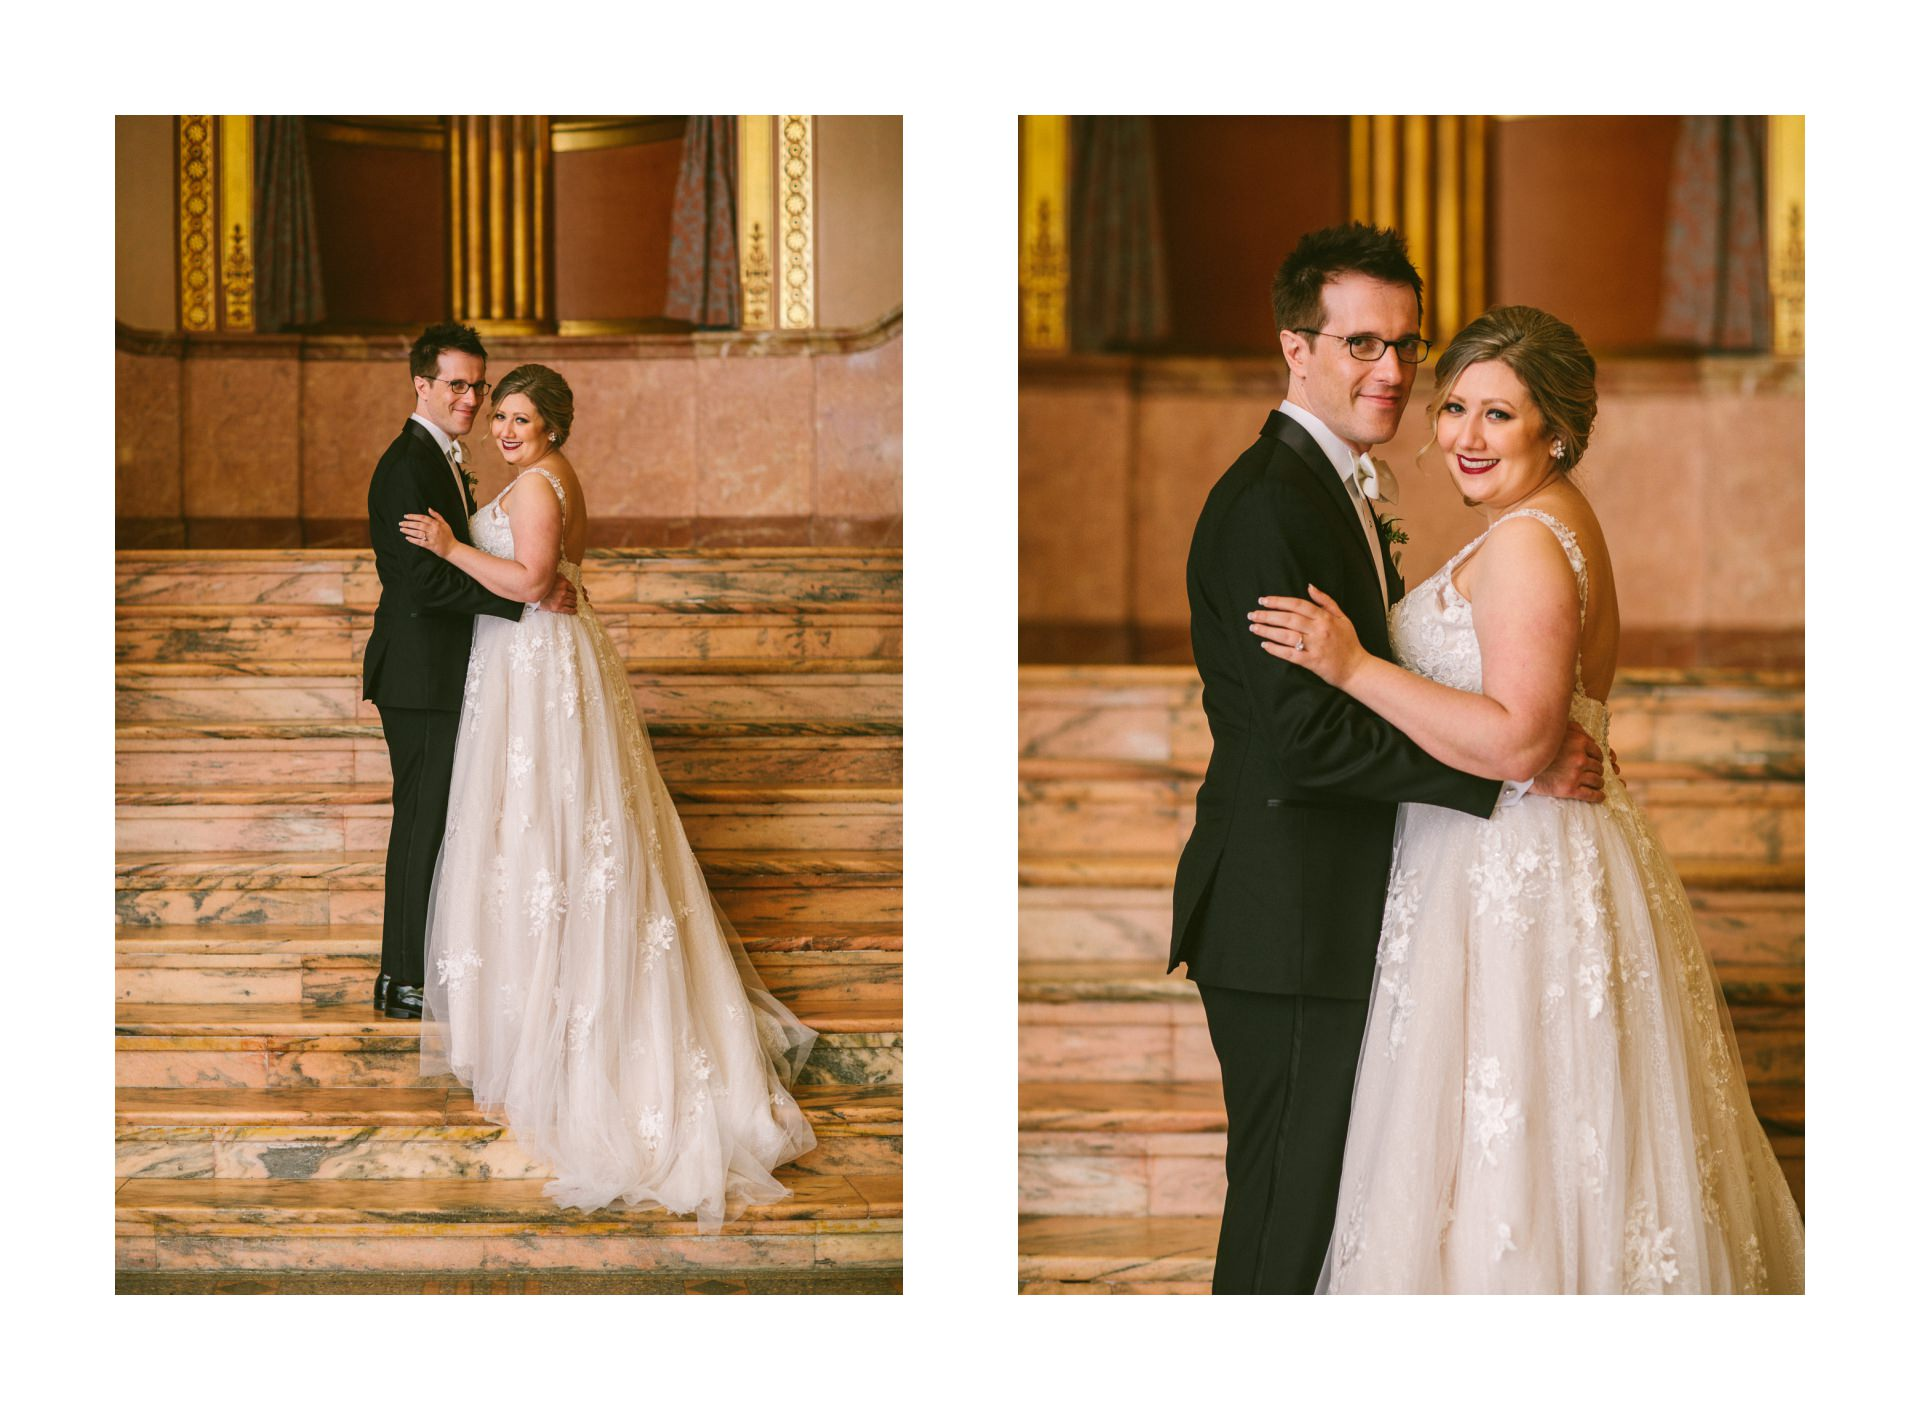 Cibreo Privato Wedding at Playhouse Square in Cleveland 1 29.jpg